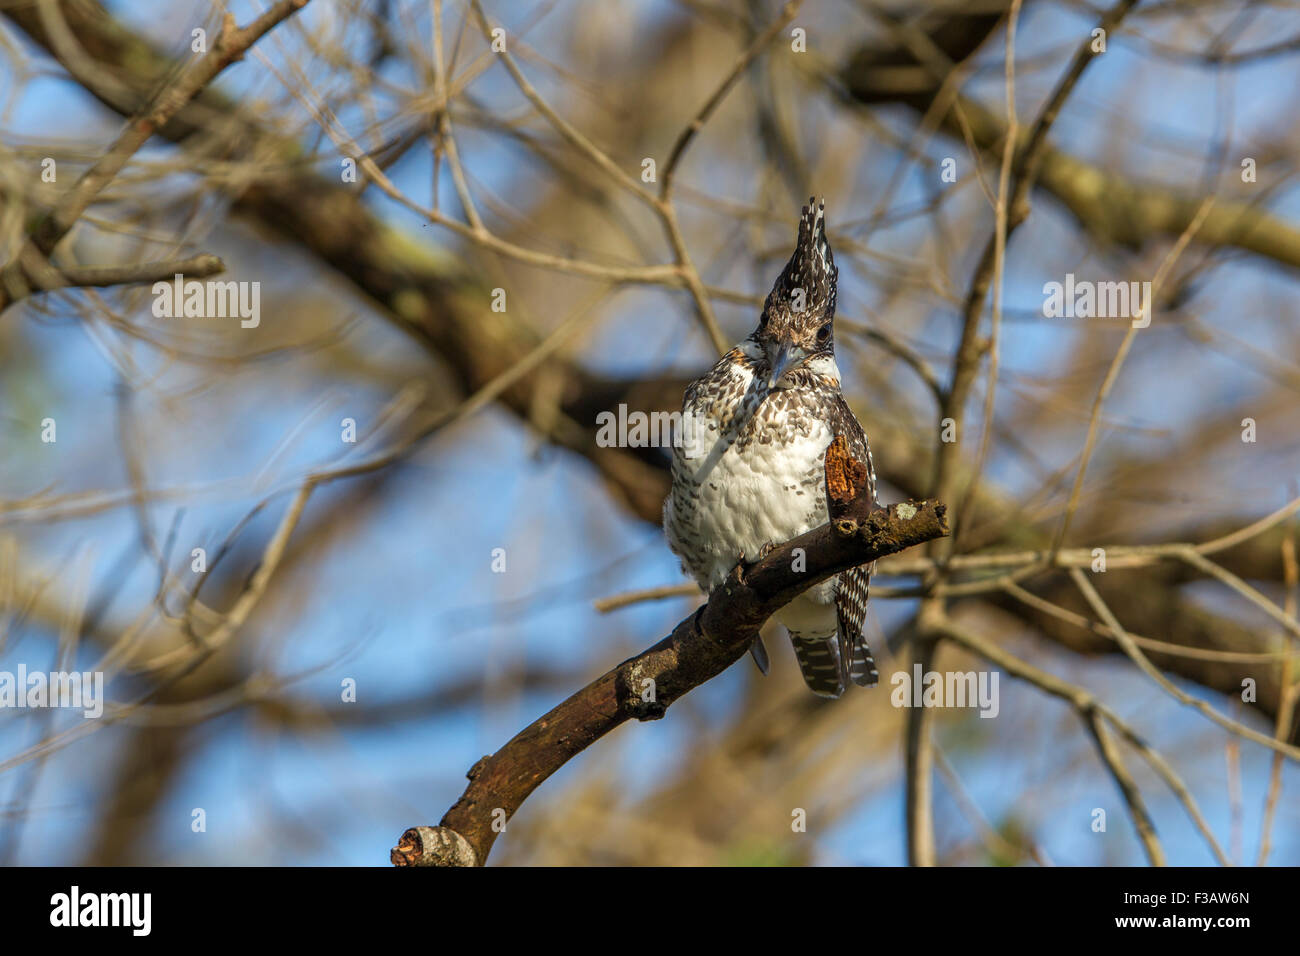 Crested kingfisher on a branch at Jim corbett National Park, India. - Stock Image